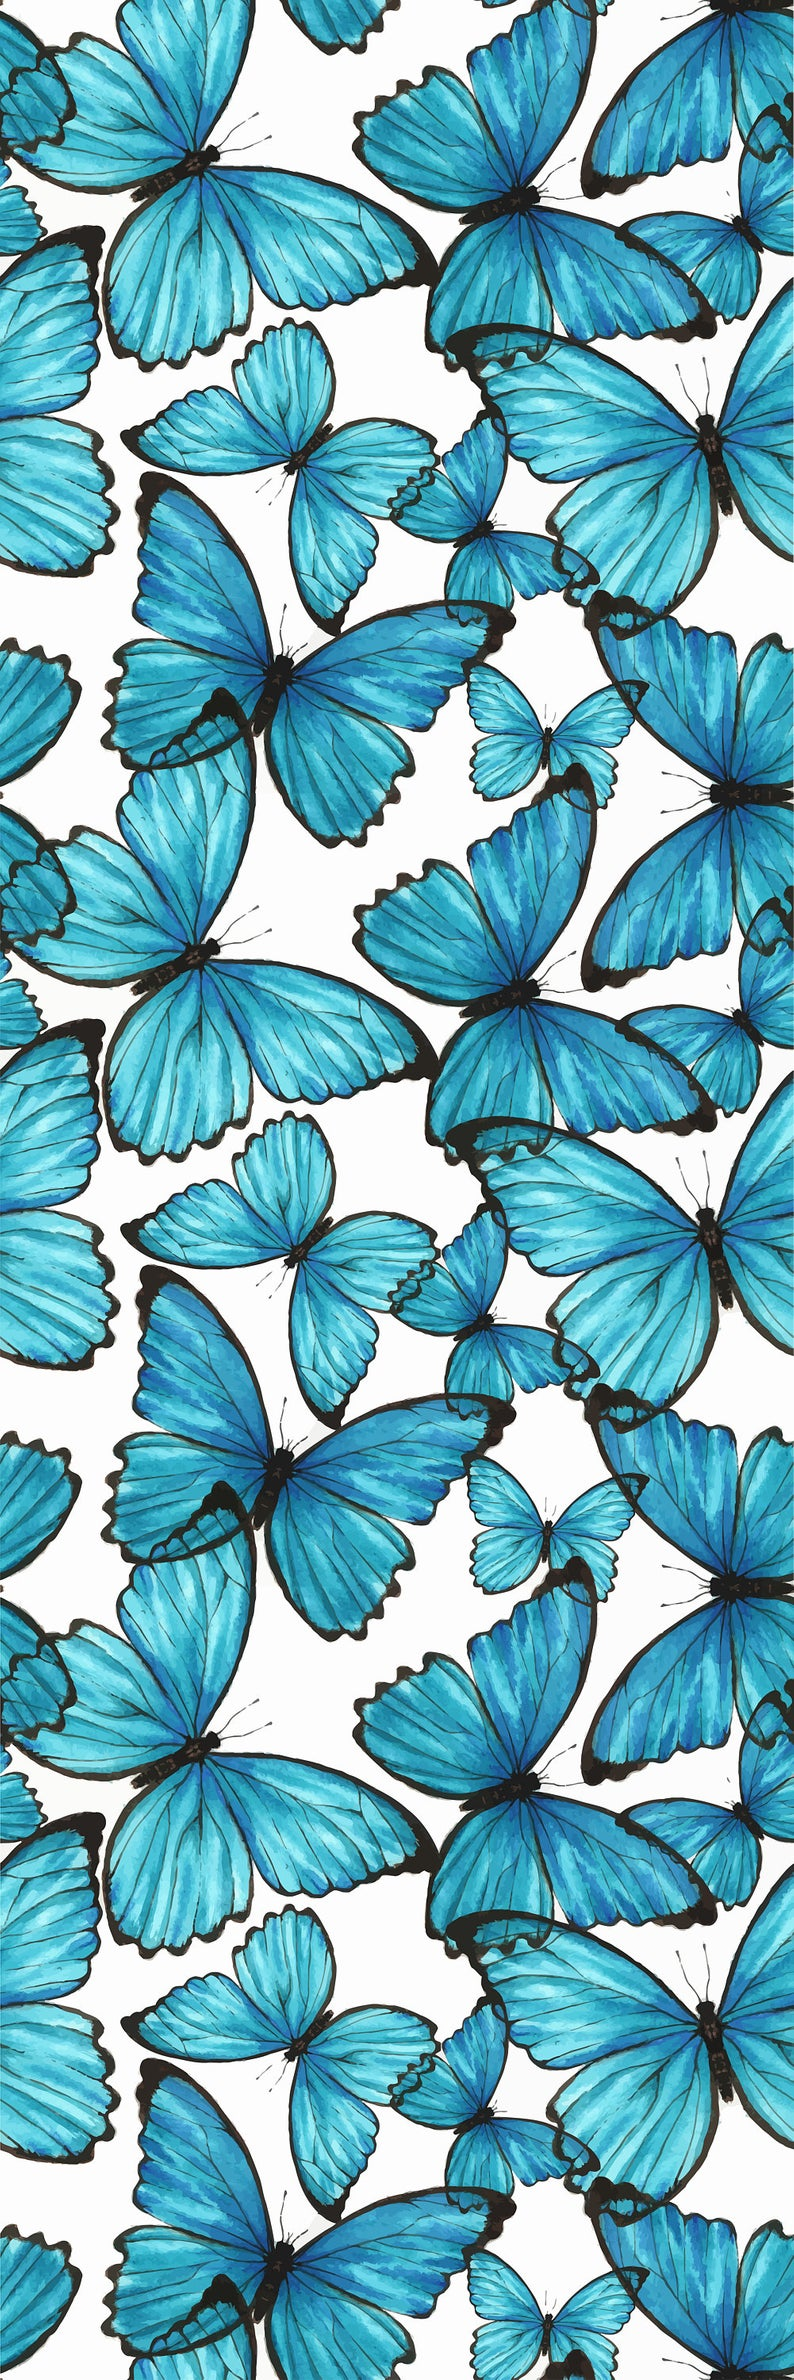 Removable Wallpaper Self Adhesive Blue Butterflies Nursery Wallpaper Peel & Stick Wallpaper #cutewallpaperbackgrounds